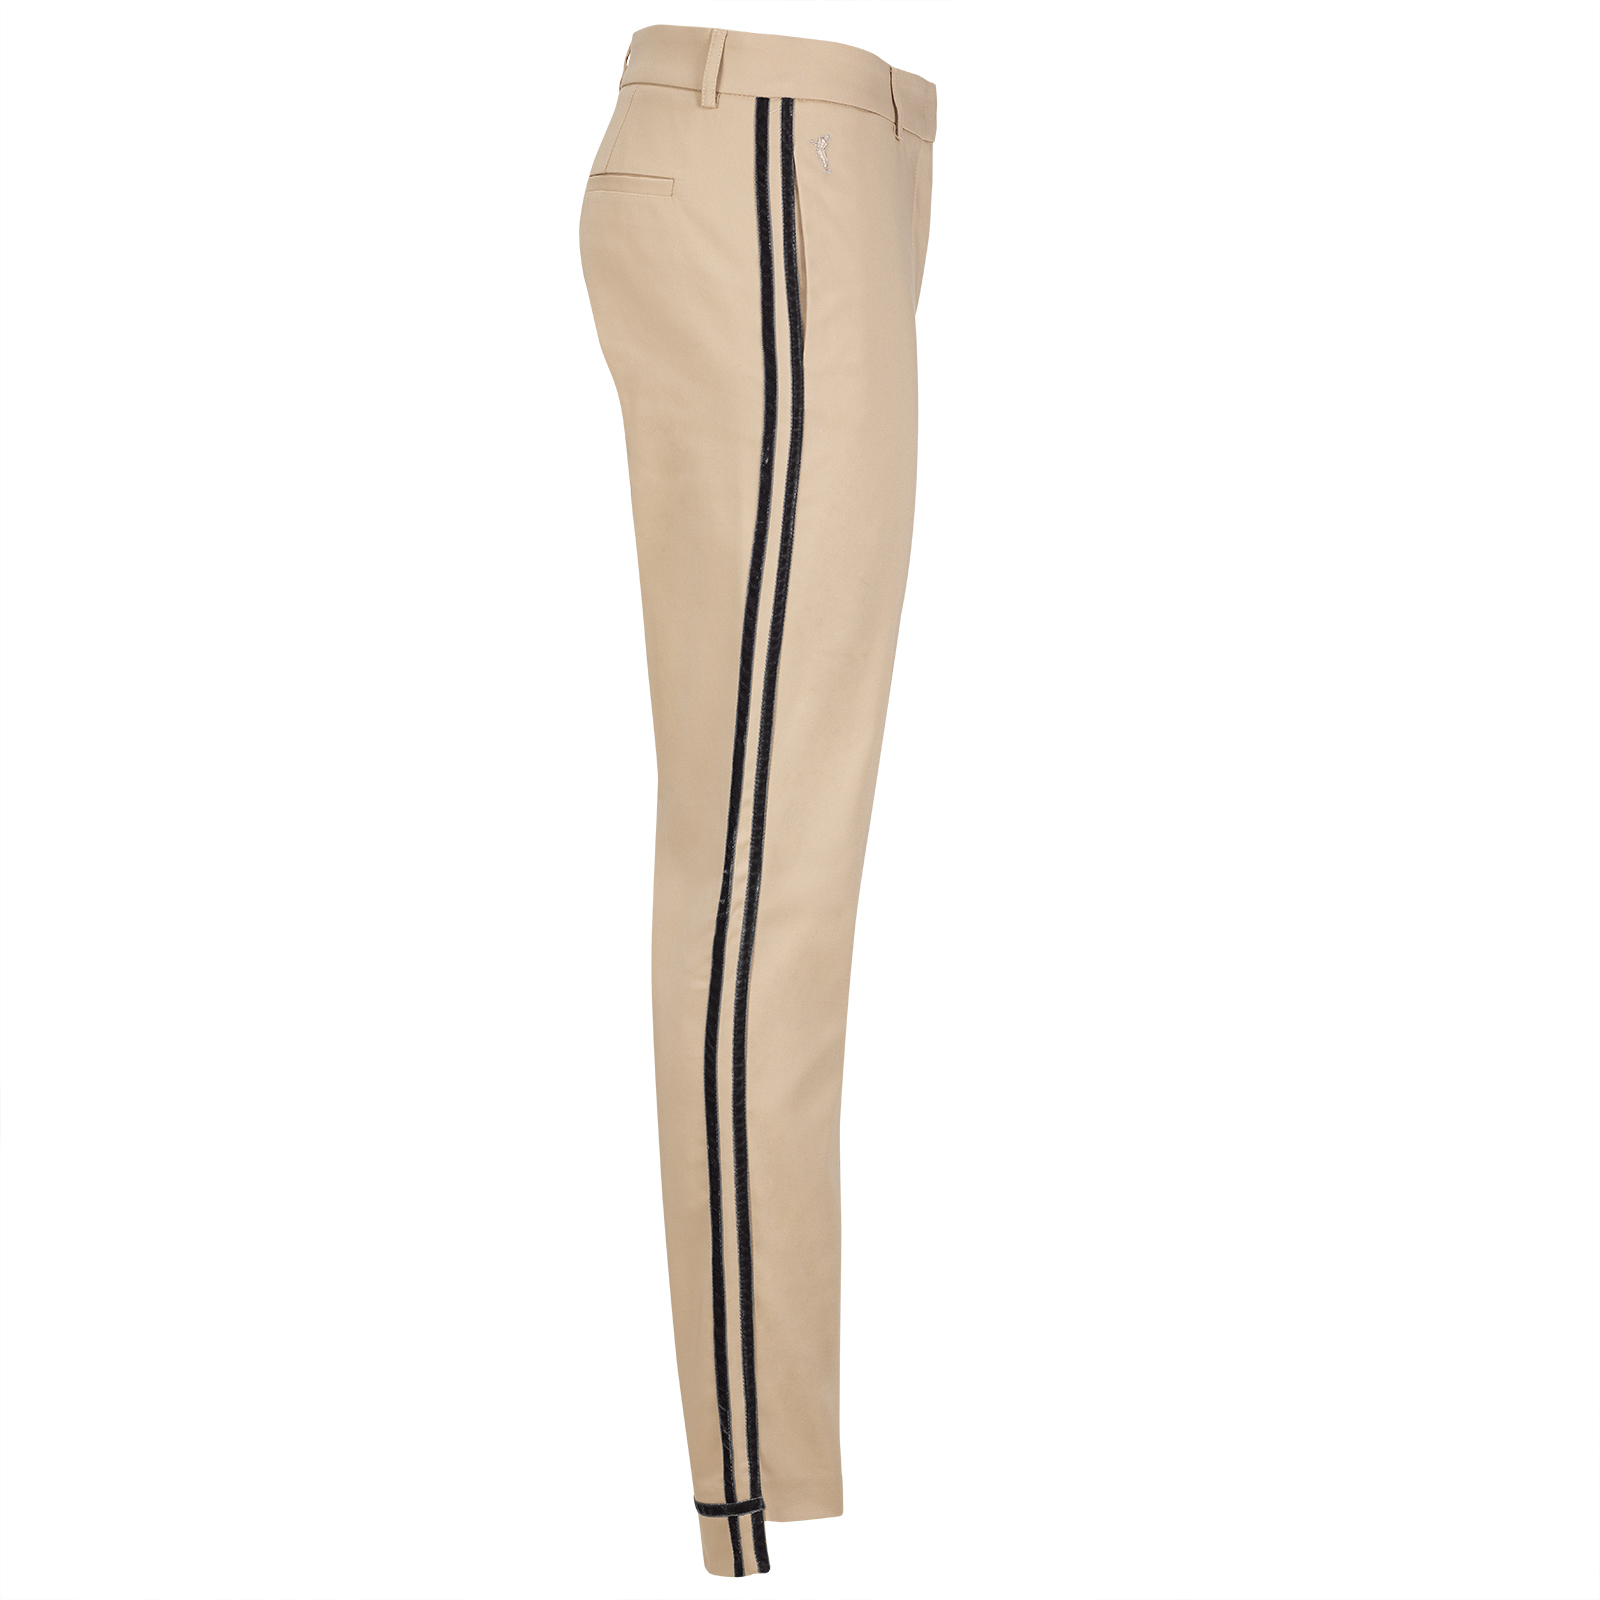 Damen 7/8 Slim-Fit Stretch-Golfhose aus exklusivem Cotton Blend